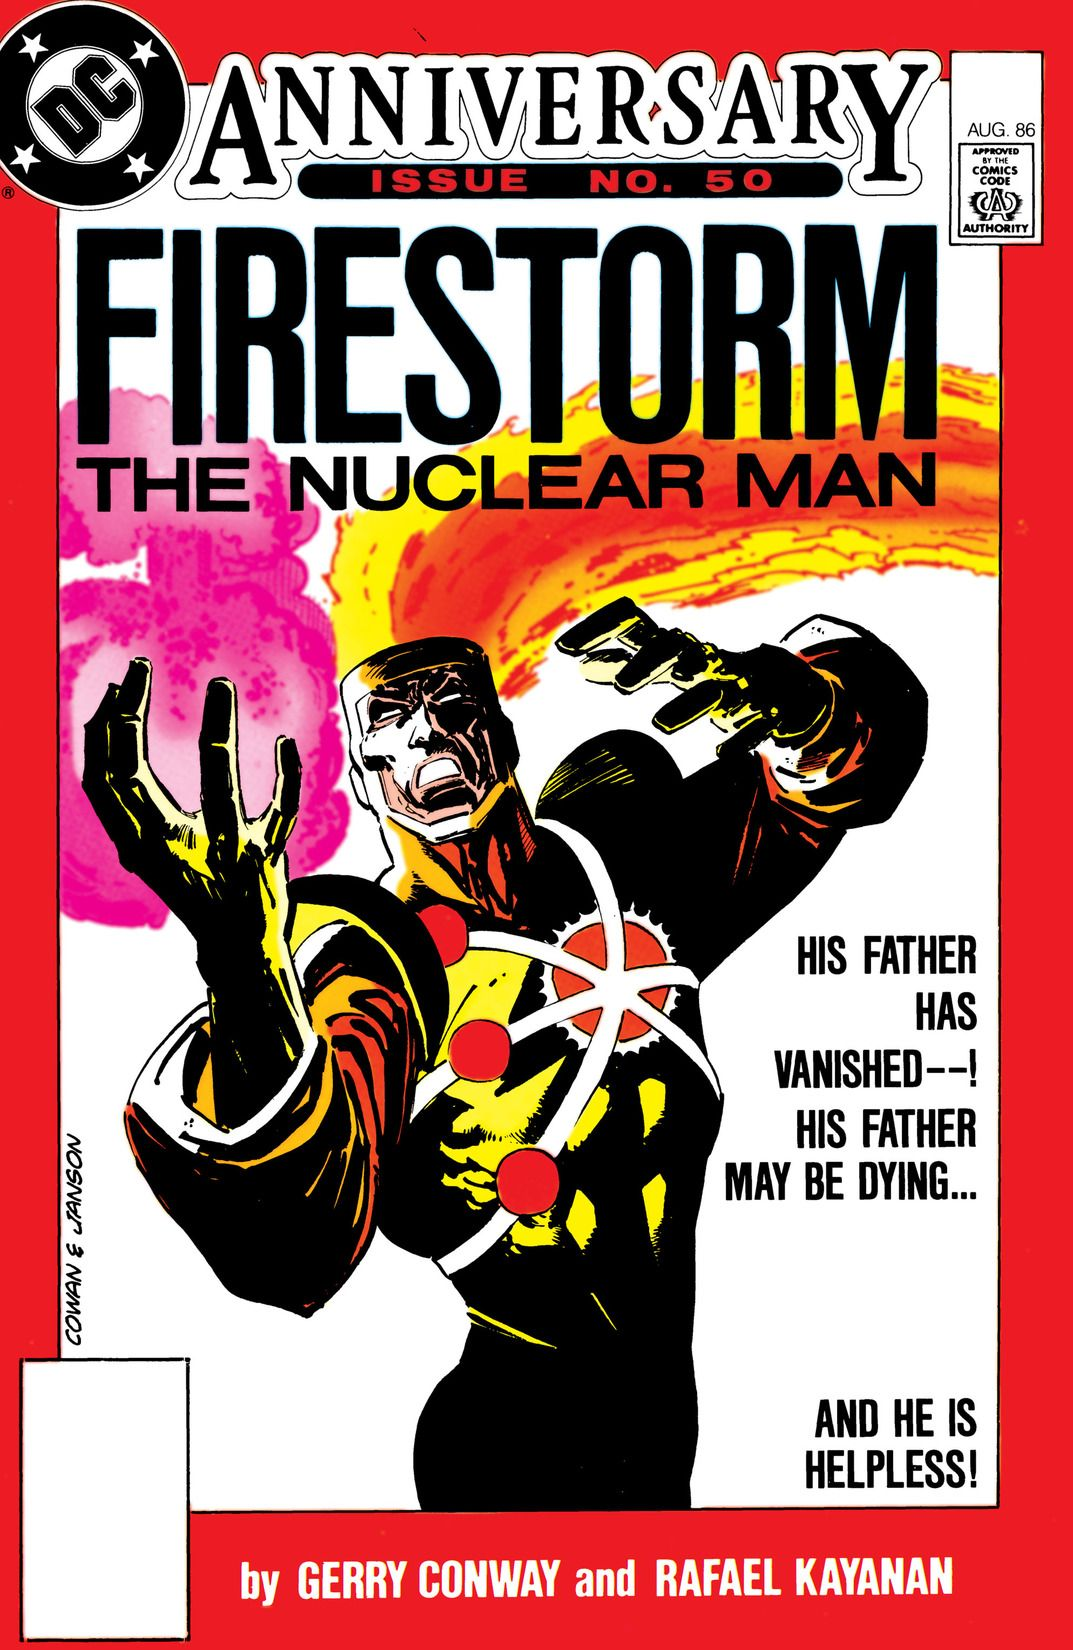 Fury of Firestorm #50 by Gerry Conway, Rafael Kayanan, Mike Machlan, Pablo Marcos and Rodin Rodriuez; cover by Denys Cowan & Klaus Janson